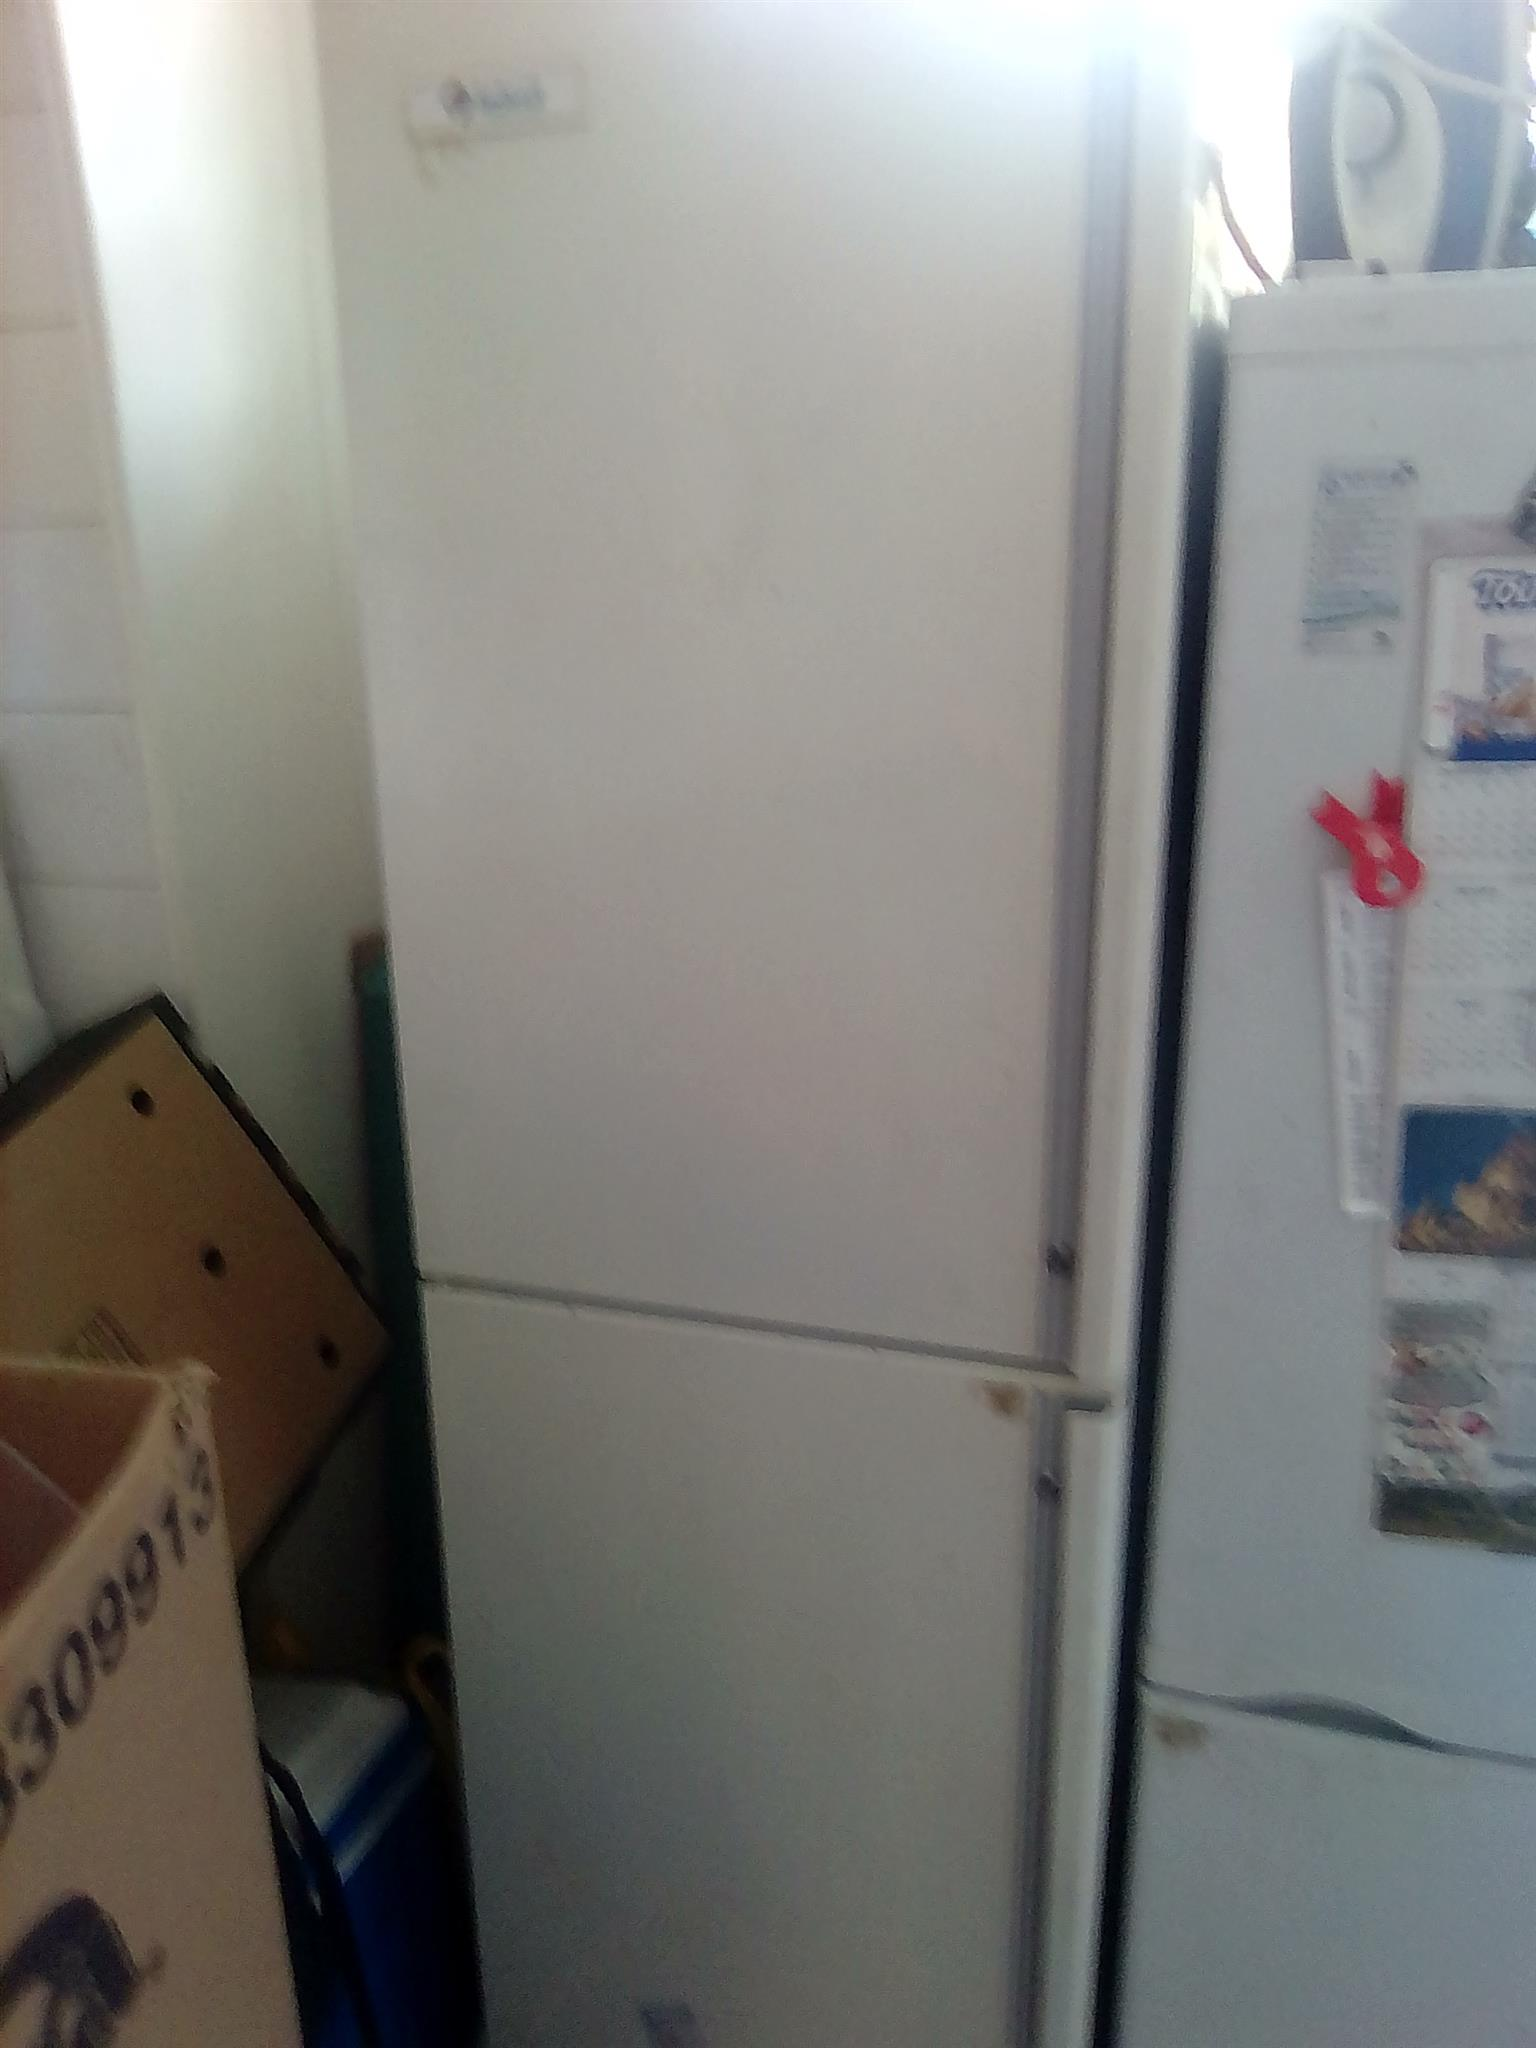 260L Indesit double door freezer